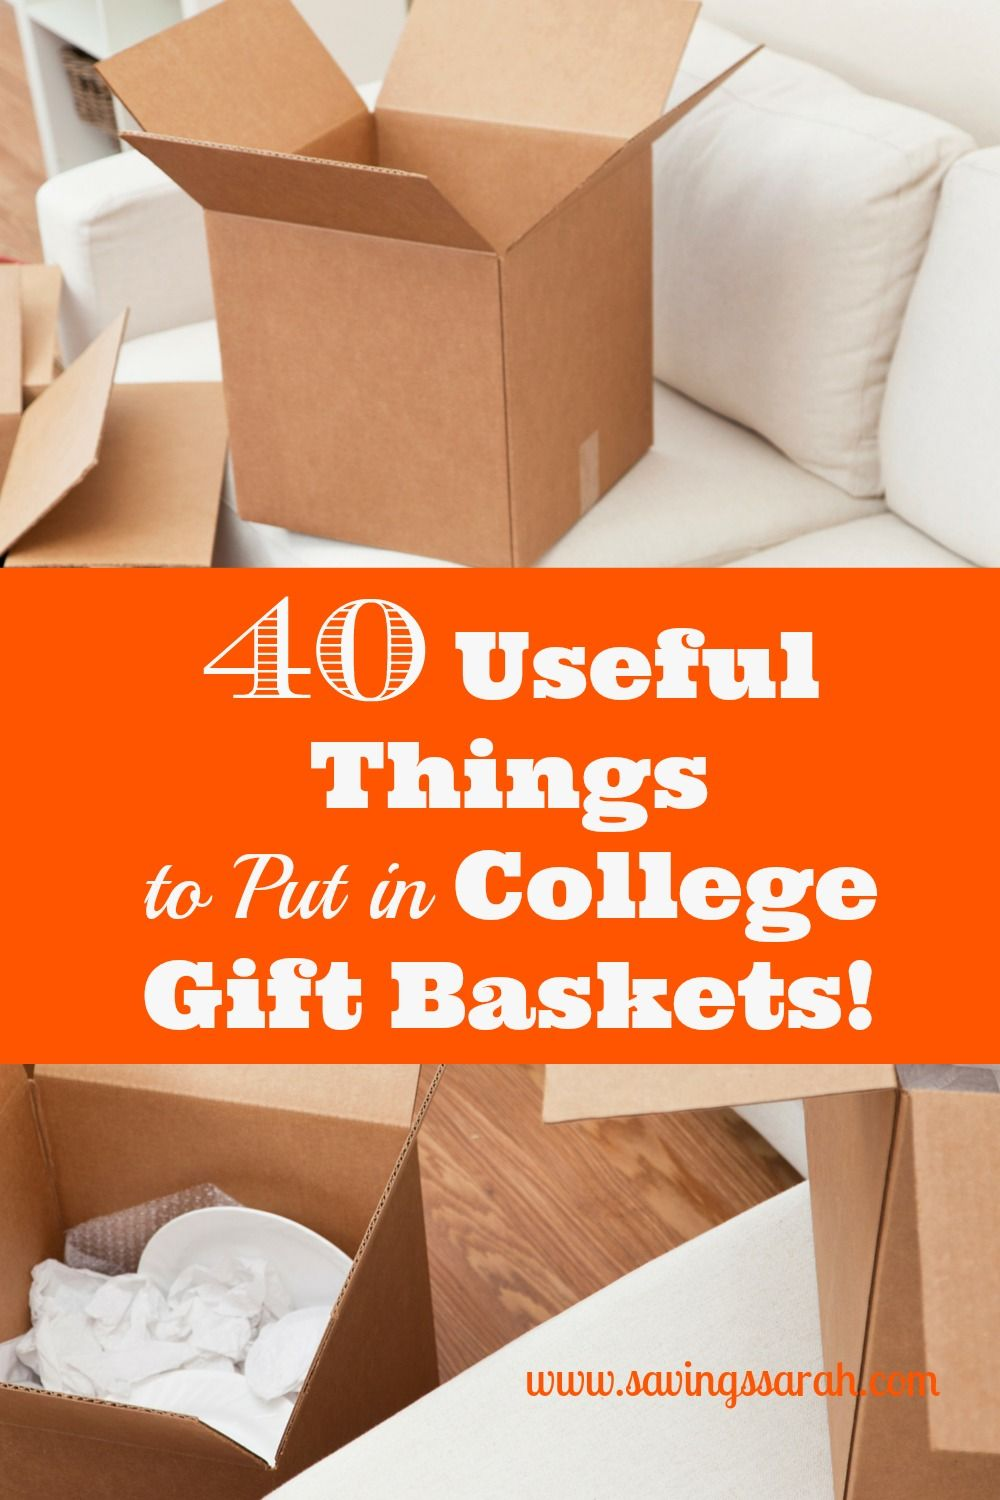 Want To Be A Hero Student Heading Off College Or Returning For New Year Fill Gift Basket From Among These 40 Useful And Not Expensive Items